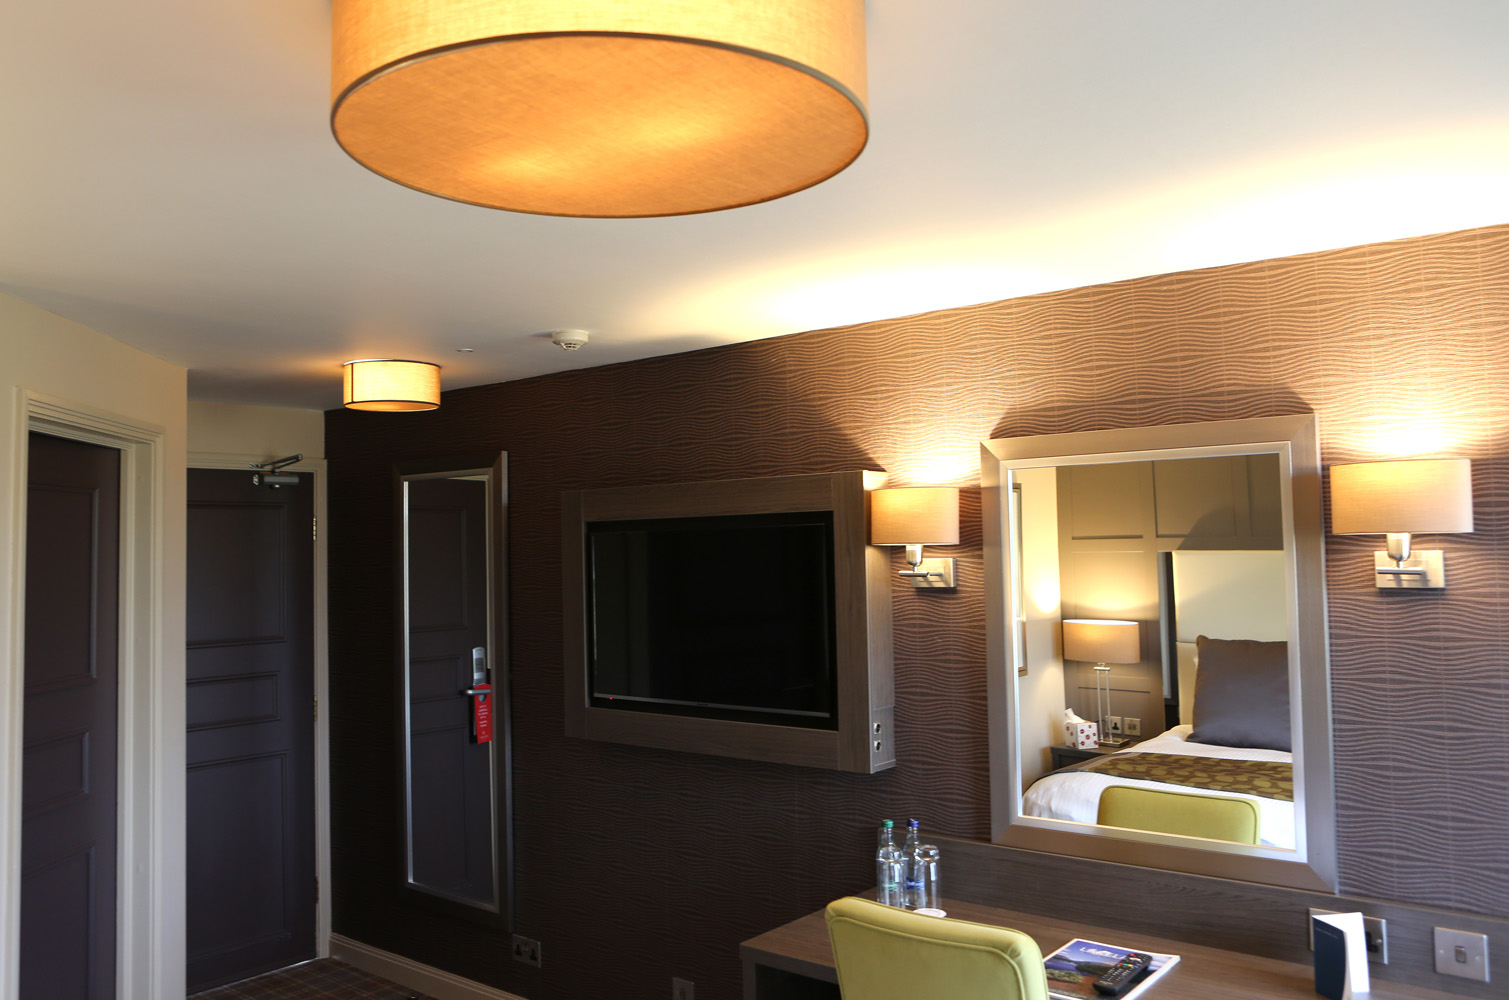 Tv and room amenities